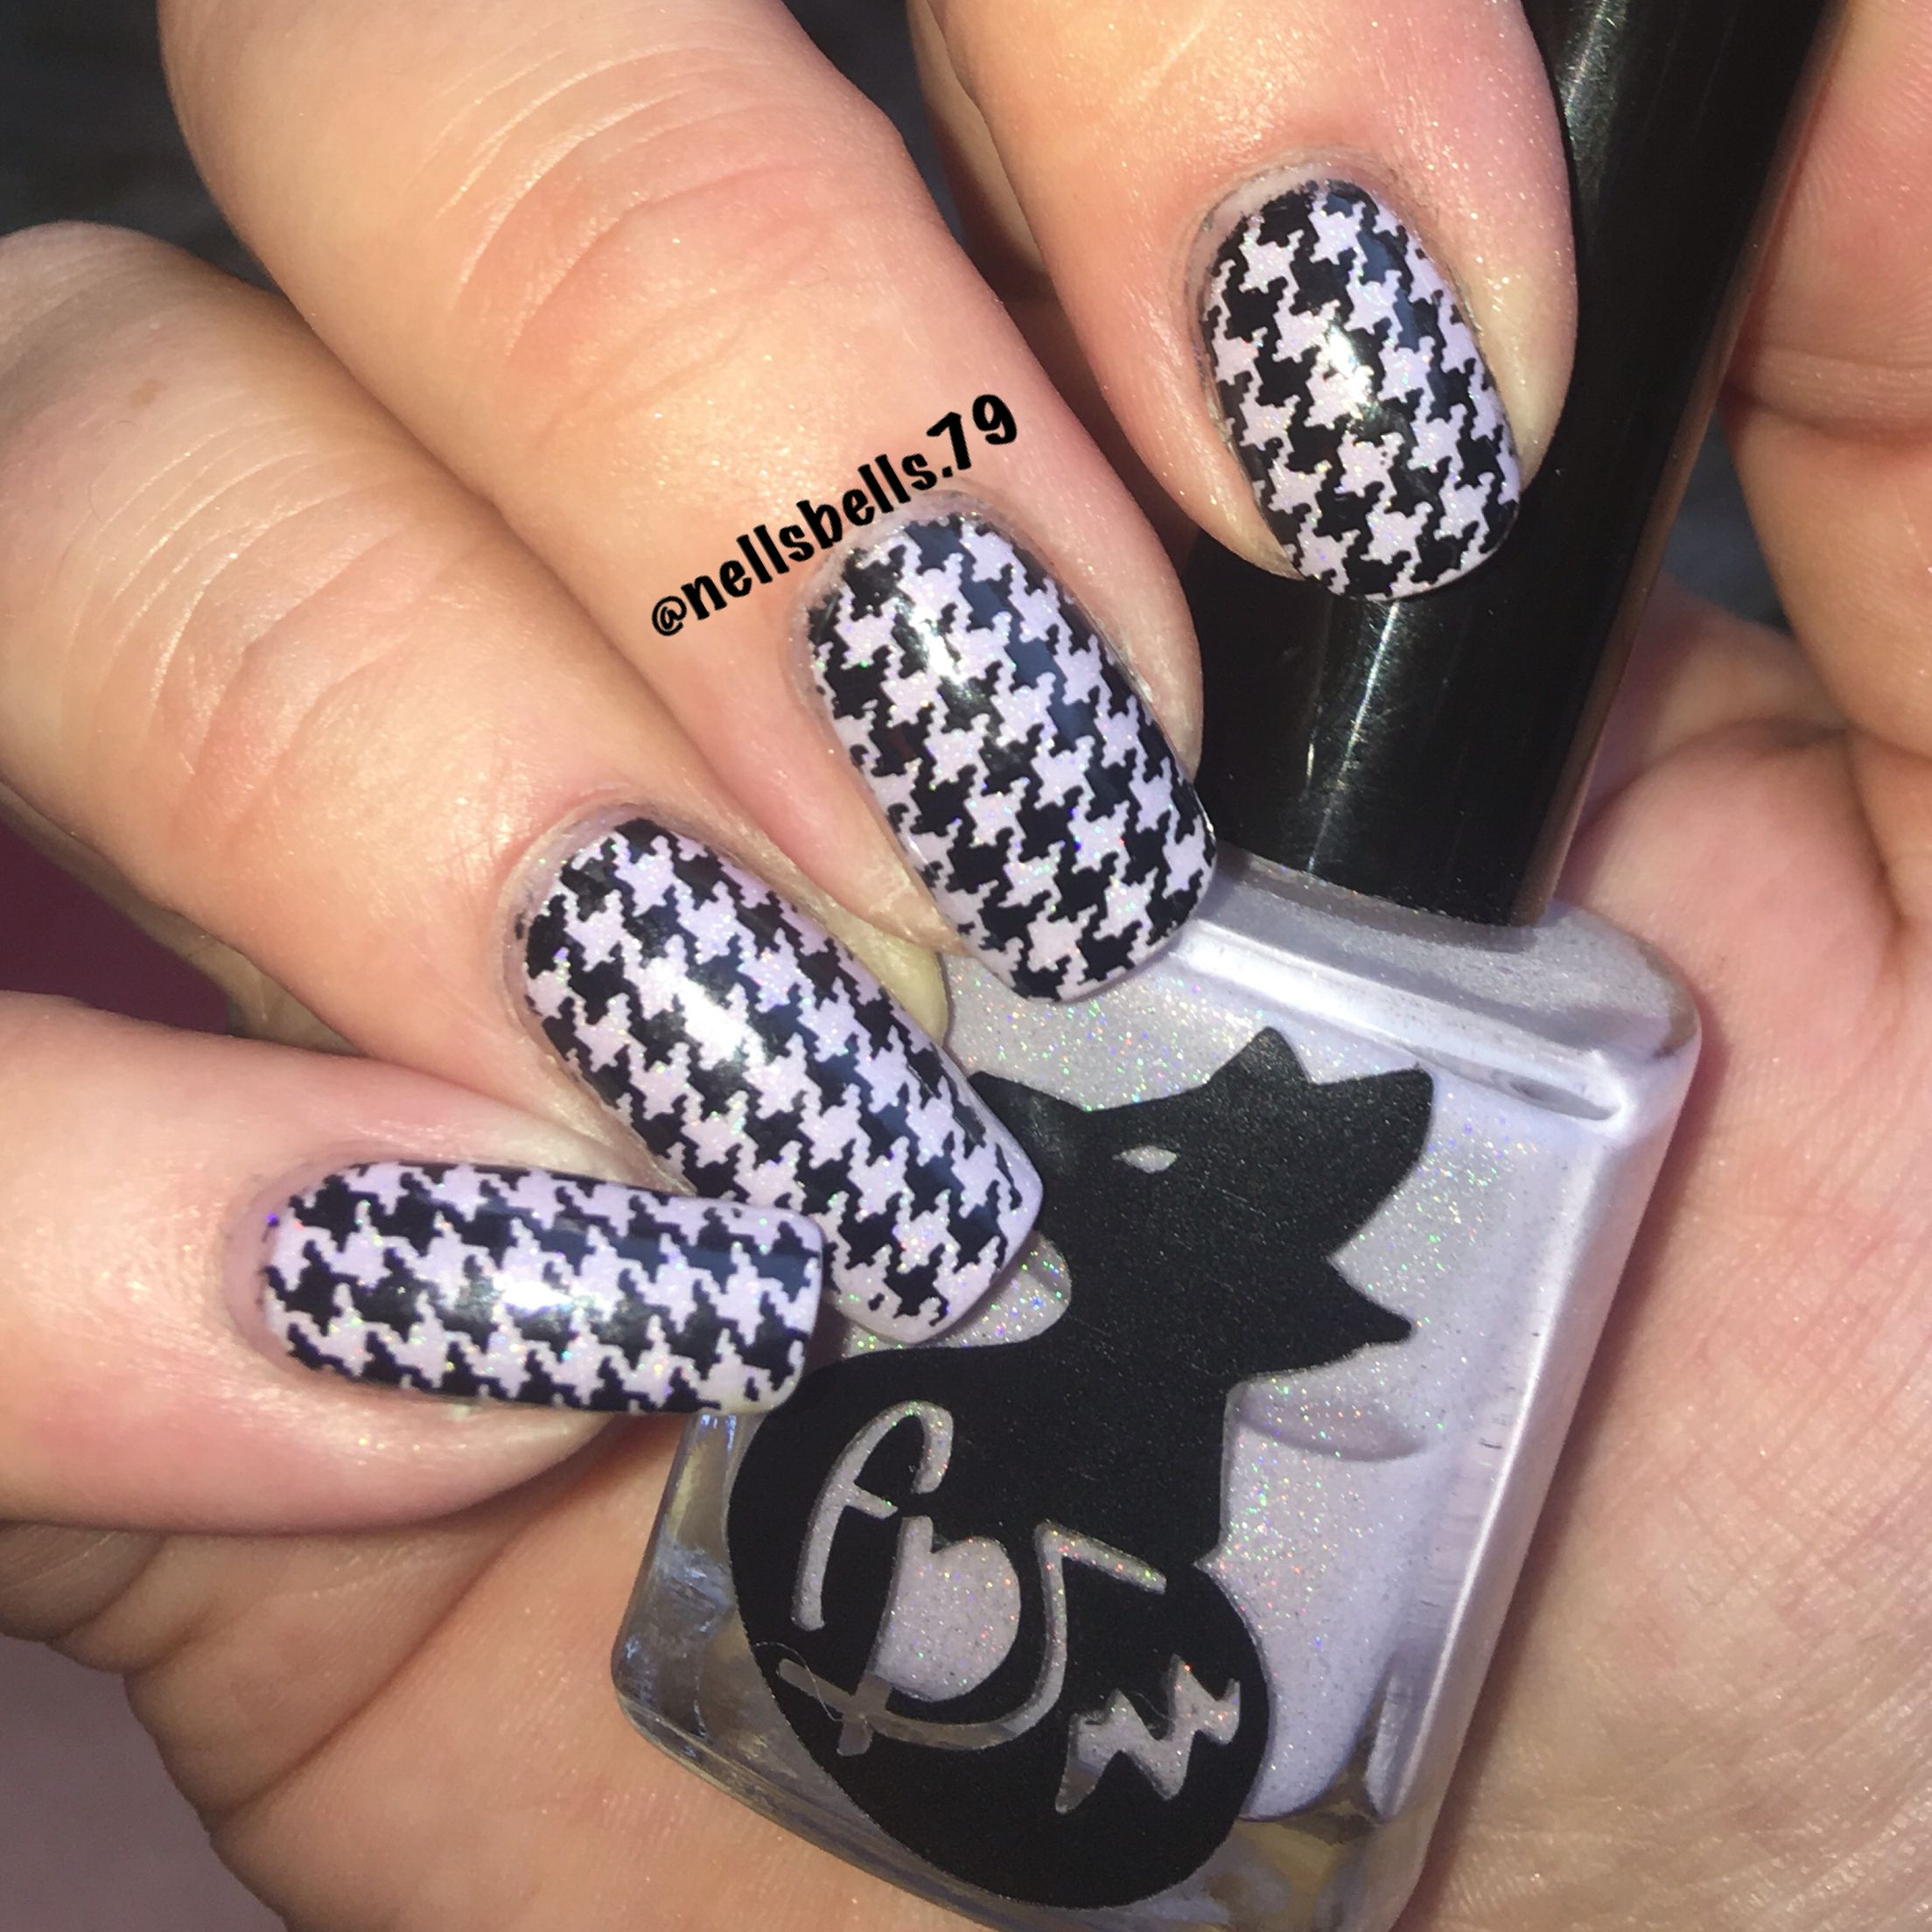 Pin on Sexy Nails 702-898-1500